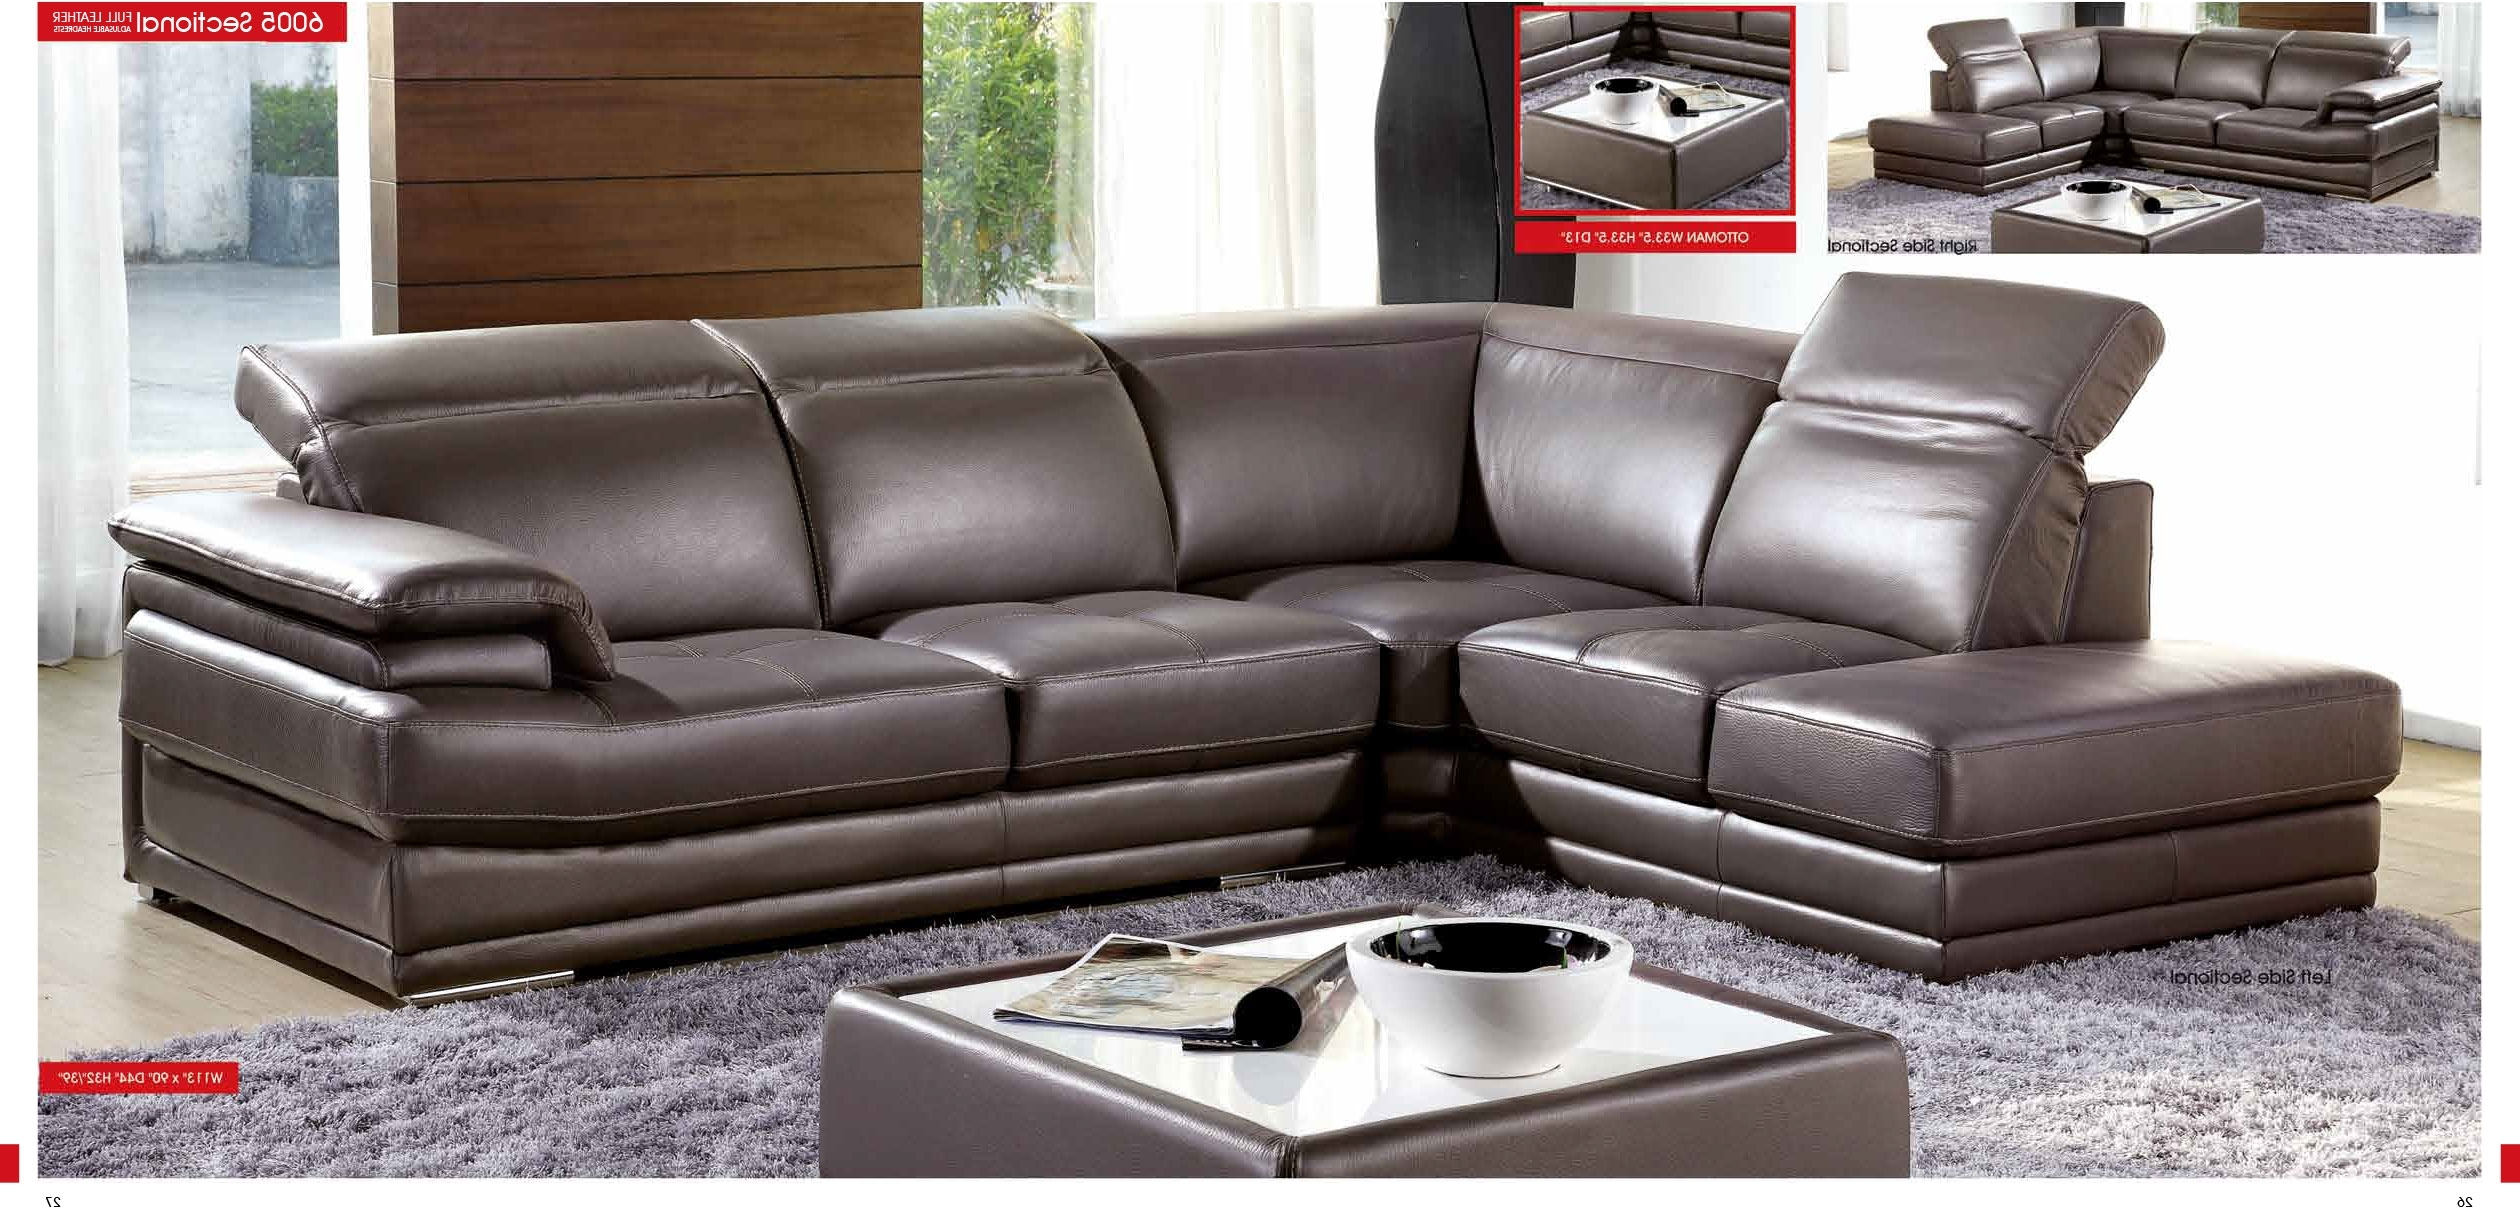 Leather Sectional Sofa Miami (View 4 of 20)